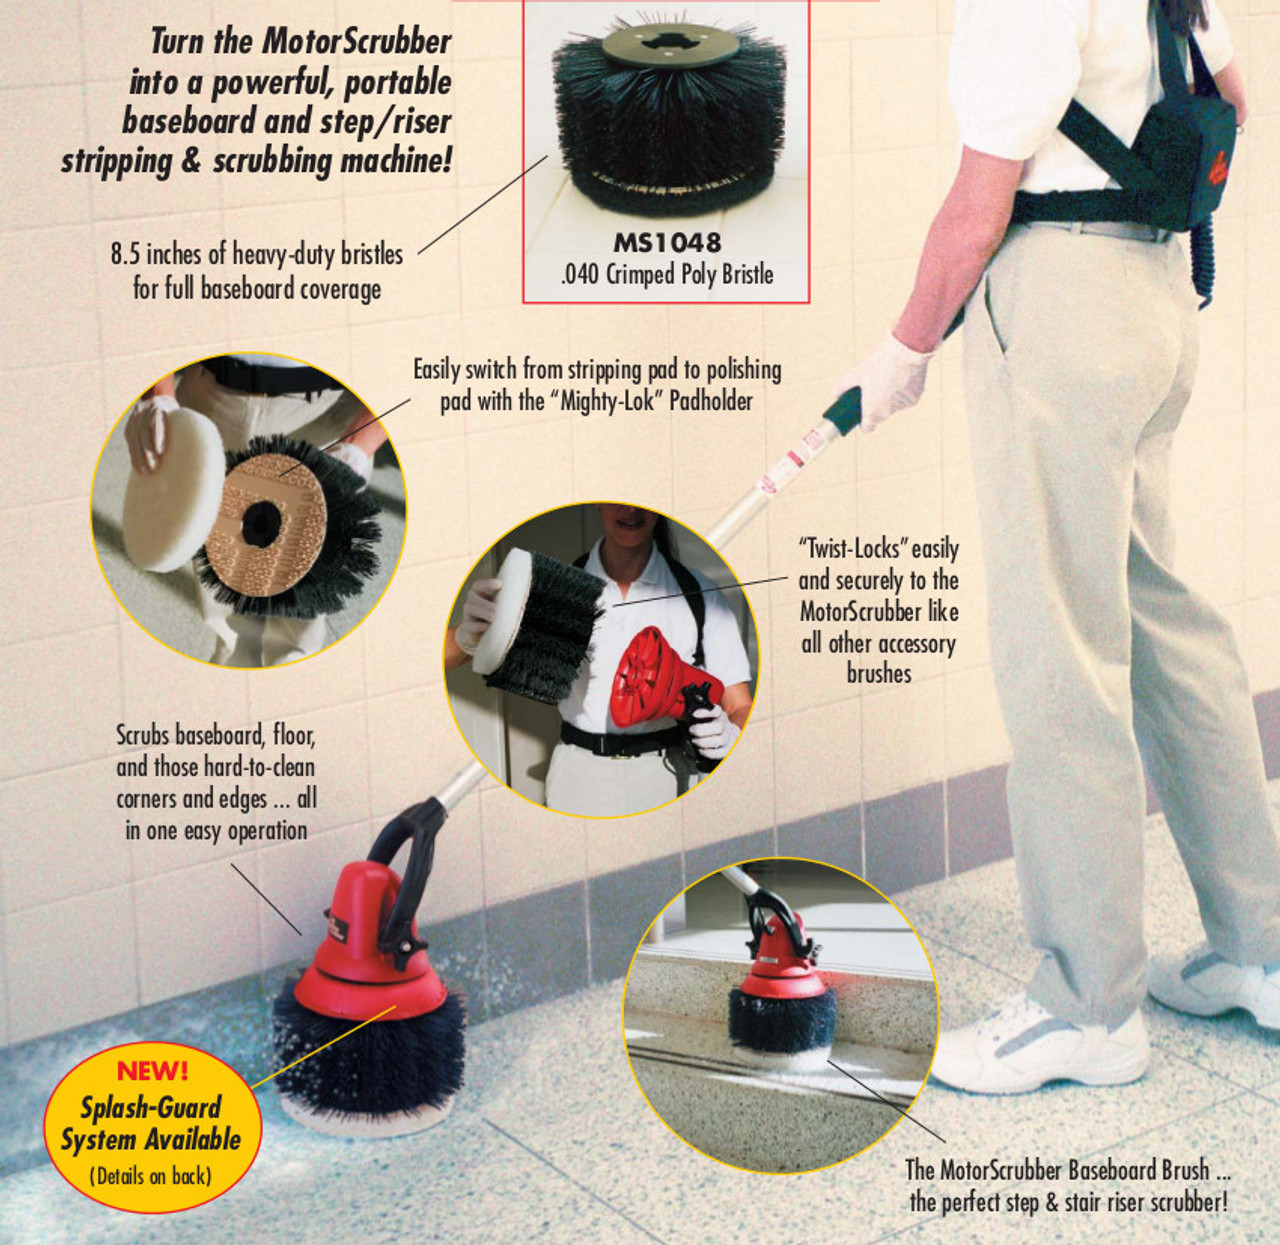 The MotorScrubber Baseboard Brush is the Accessory you can't do without!